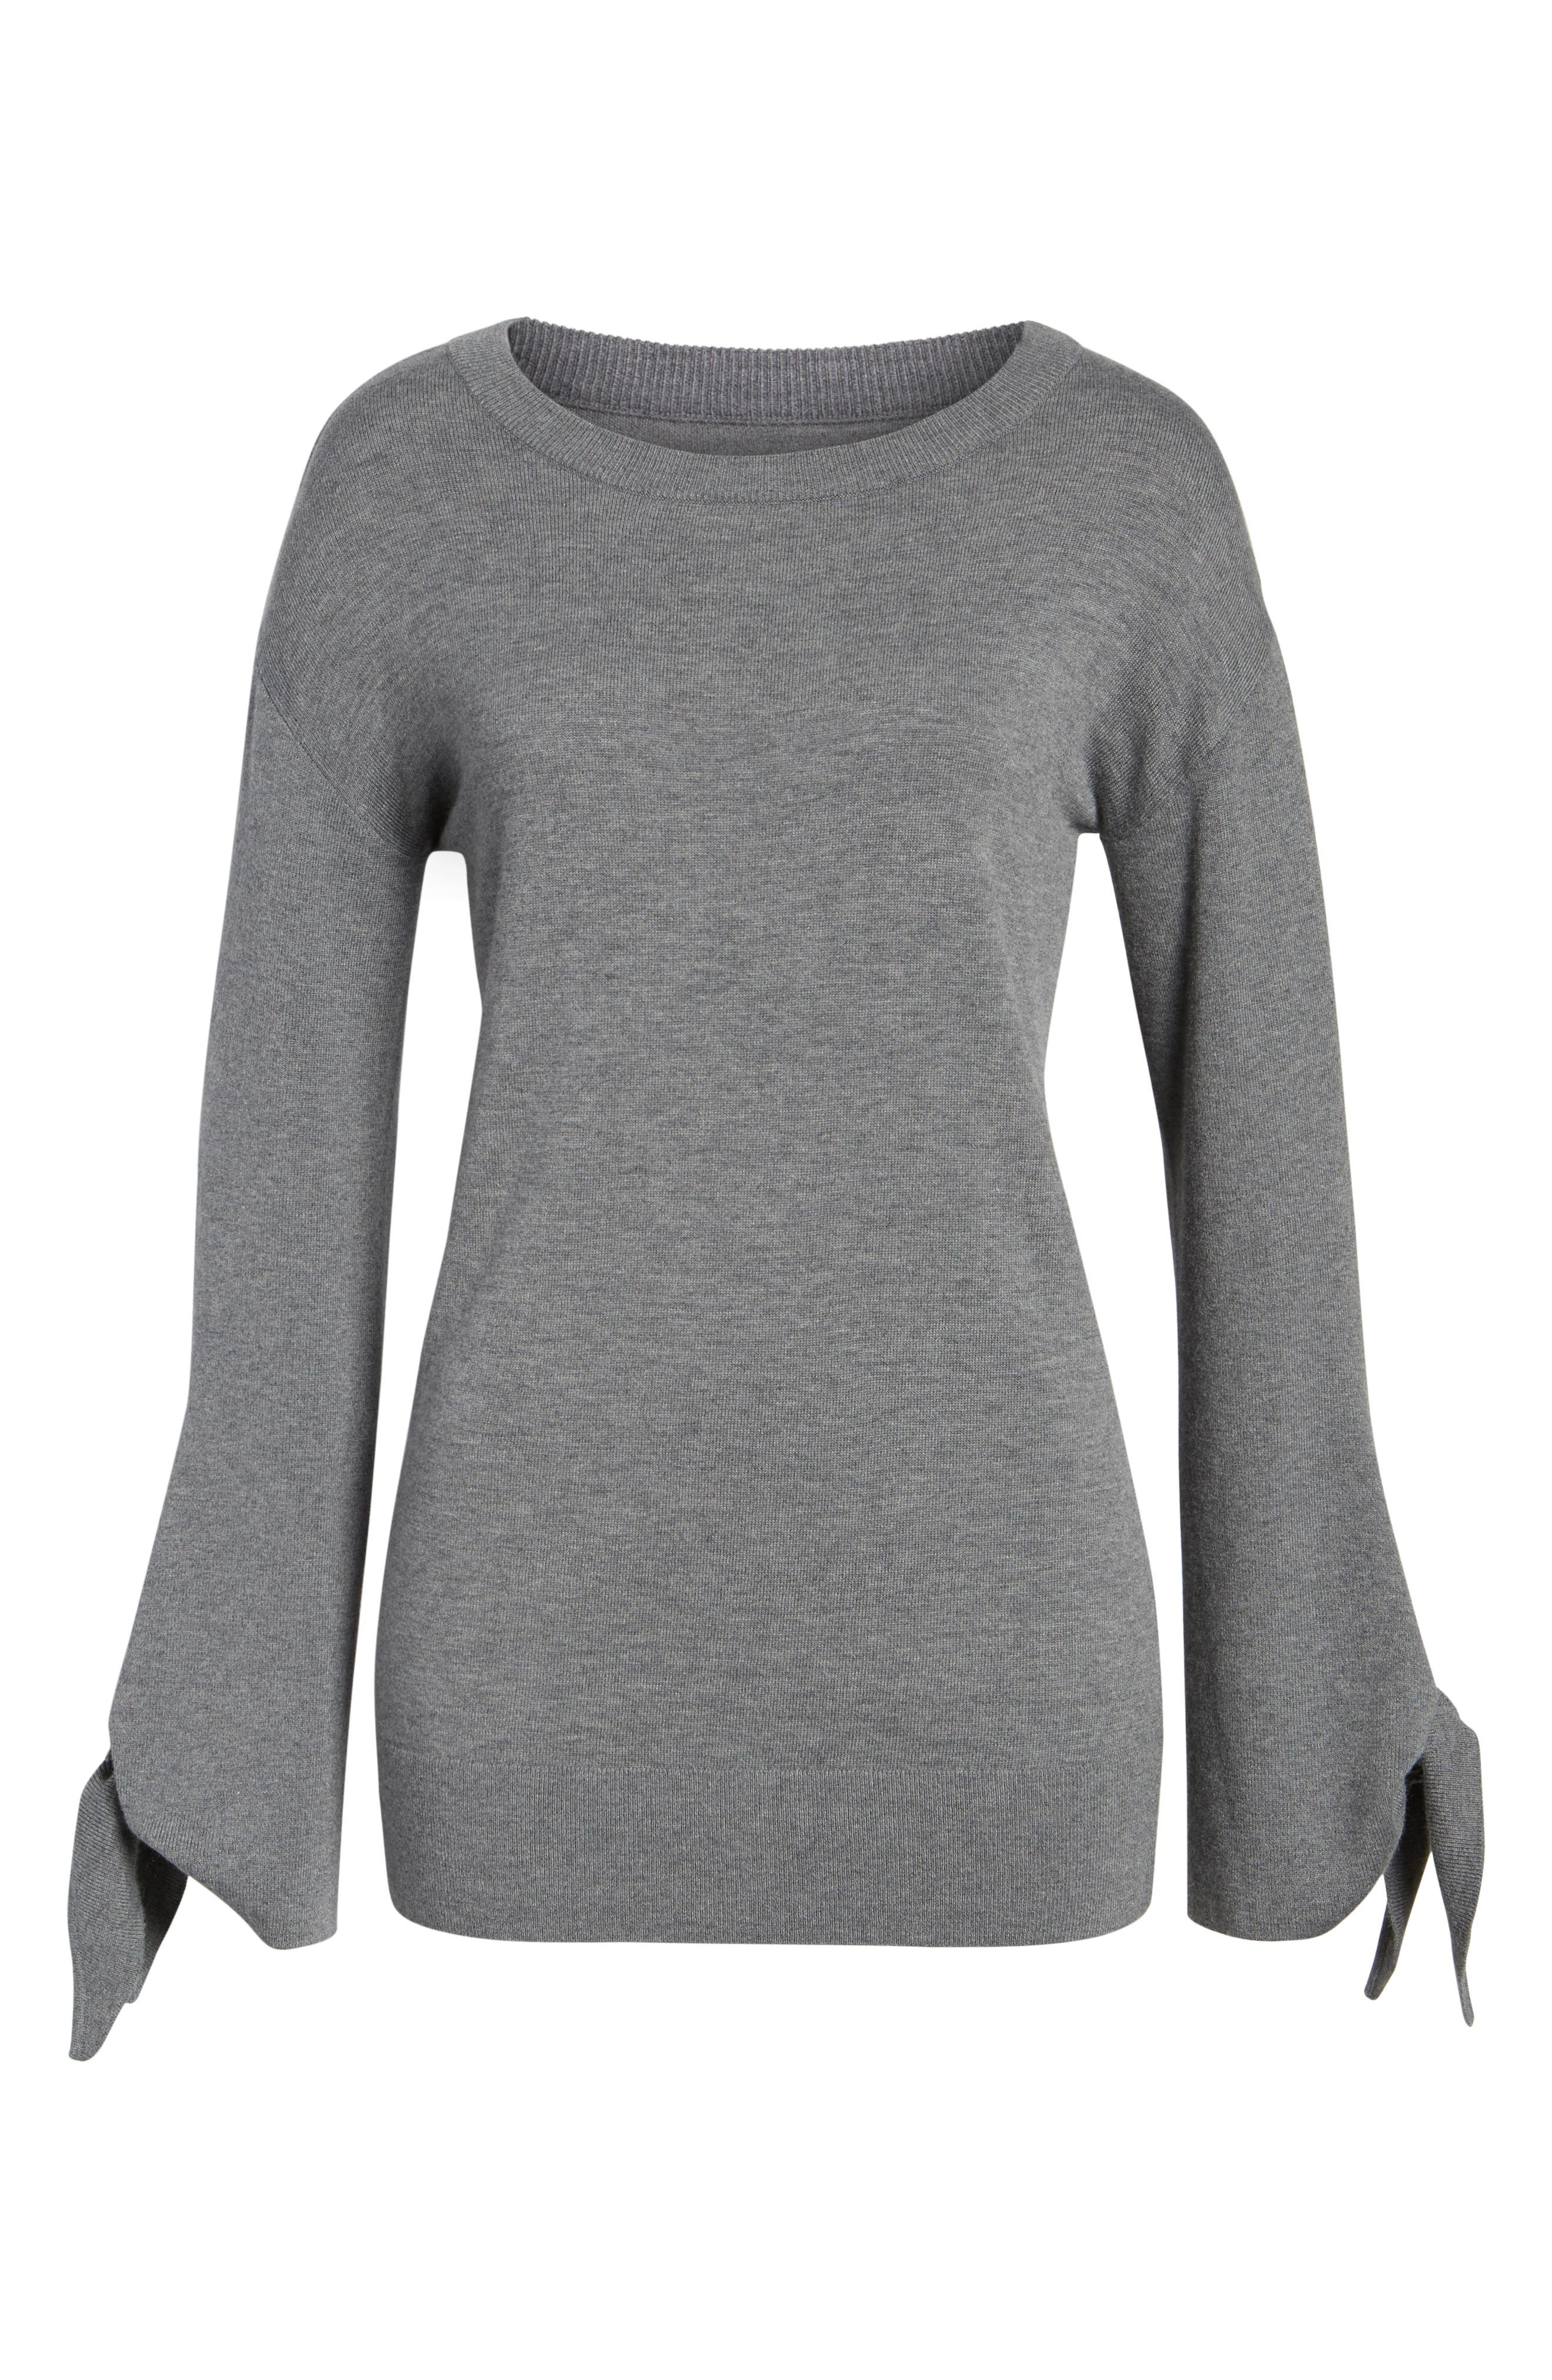 Tie Sleeve Sweater,                             Alternate thumbnail 6, color,                             Grey Dark Heather